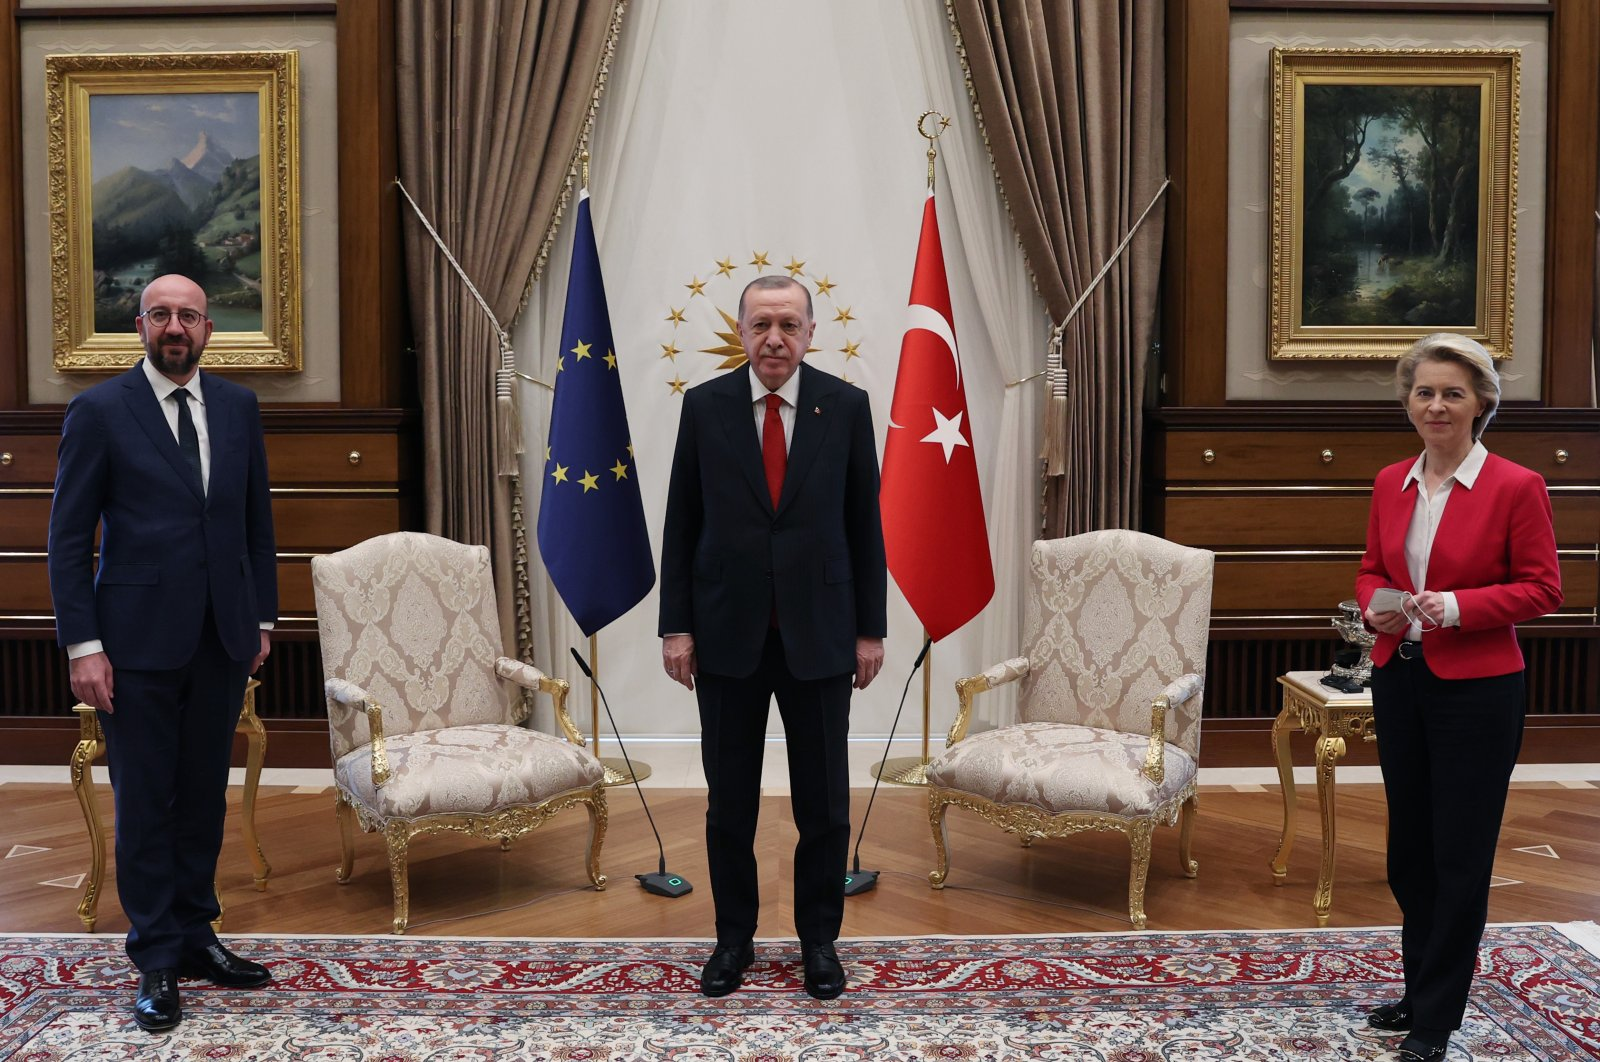 President Recep Tayyip Erdoğan (C) poses with Charles Michel (L), head of the European Council and Ursula von der Leyen, head of the European Commission at the Presidential Complex in Ankara, Turkey, April 7, 2021. (IHA Photo)